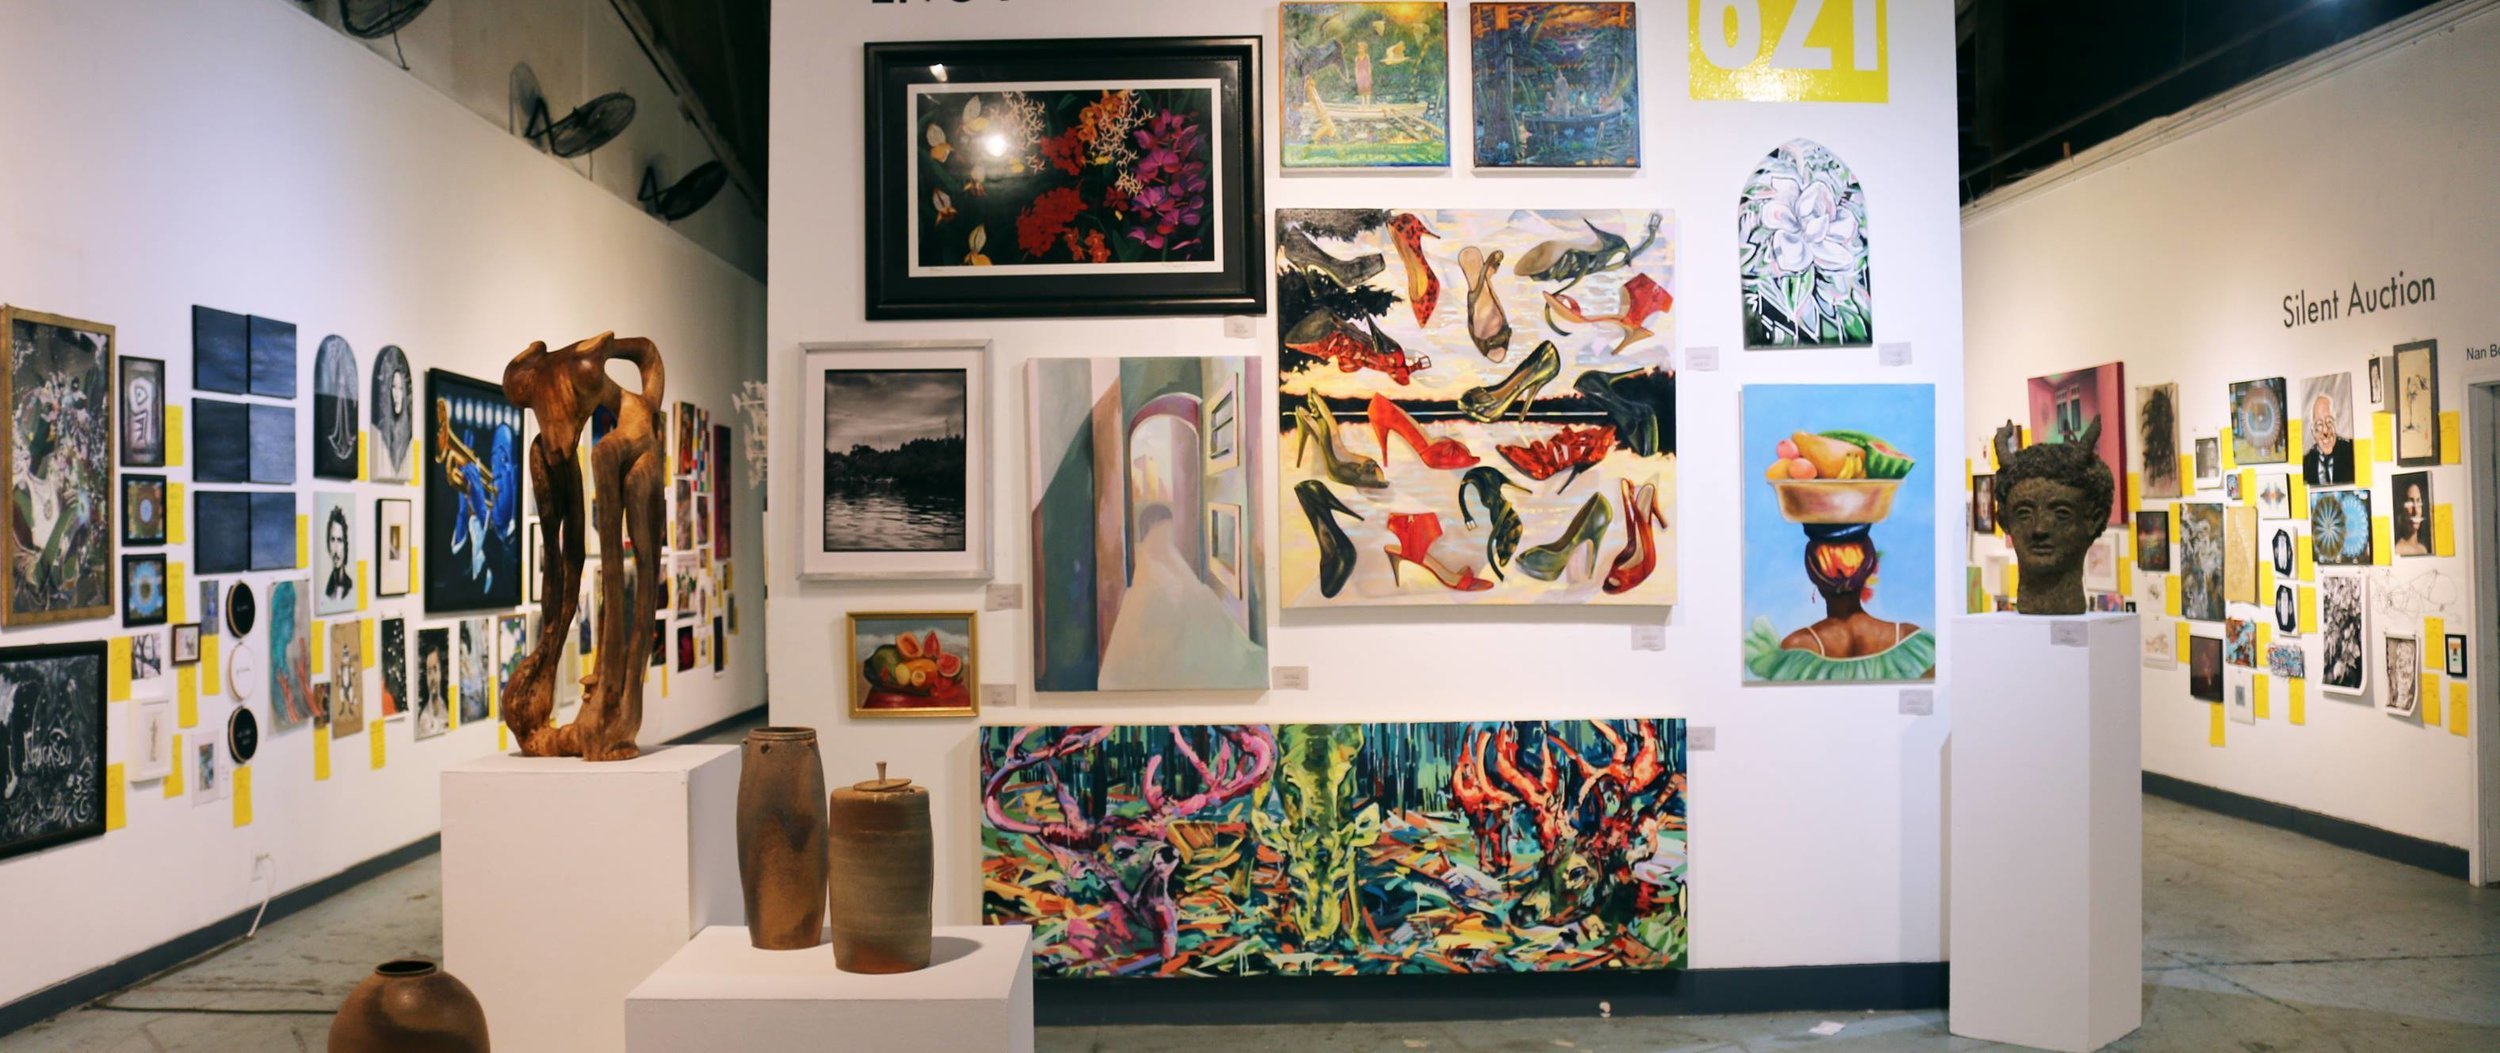 621 GALLERY - CATEGORY: Art GalleryADDRESS: 621 Industrial DrCONTACT: (850) 222-6210 / 621galleryinc@gmail.comHOURS: THUR - SUN from 1pm-5pm / First Fridays & special eventsABOUT: The 621 Gallery, Inc. is a non-profit arts exhibition and programs space, offering progressive and innovative contemporary art, events and programs for all. 621 Gallery is committed to bringing contemporary art, artists, ideas, and programs to the North Florida and South Georgia region.621 Gallery presents the work of 150-250 incredible local and national artists annually in a variety of formats, including solo and group exhibits (2-4 exhibits per month), from September through June each year. We do our best to share the work of artists at any stage in their career — from student to established.The 621 Gallery provides a variety of cultural events that enhance the quality of life in Tallahassee and the surrounding area. We strive to be a showcase for ambitious contemporary art from both local and national artists. We aim to partner with other organizations to create events that expand the meaning of art in the community and that broaden our outreach and membership base. No other visual arts space in our area addresses the artistic and cultural needs of such a diverse range of participants.Monthly program offerings include monthly educational programming for children and adults, monthly literary readings, musical, theatrical and dance performances, as well as participation several times a year in outdoor festivals at Railroad Square Art District.